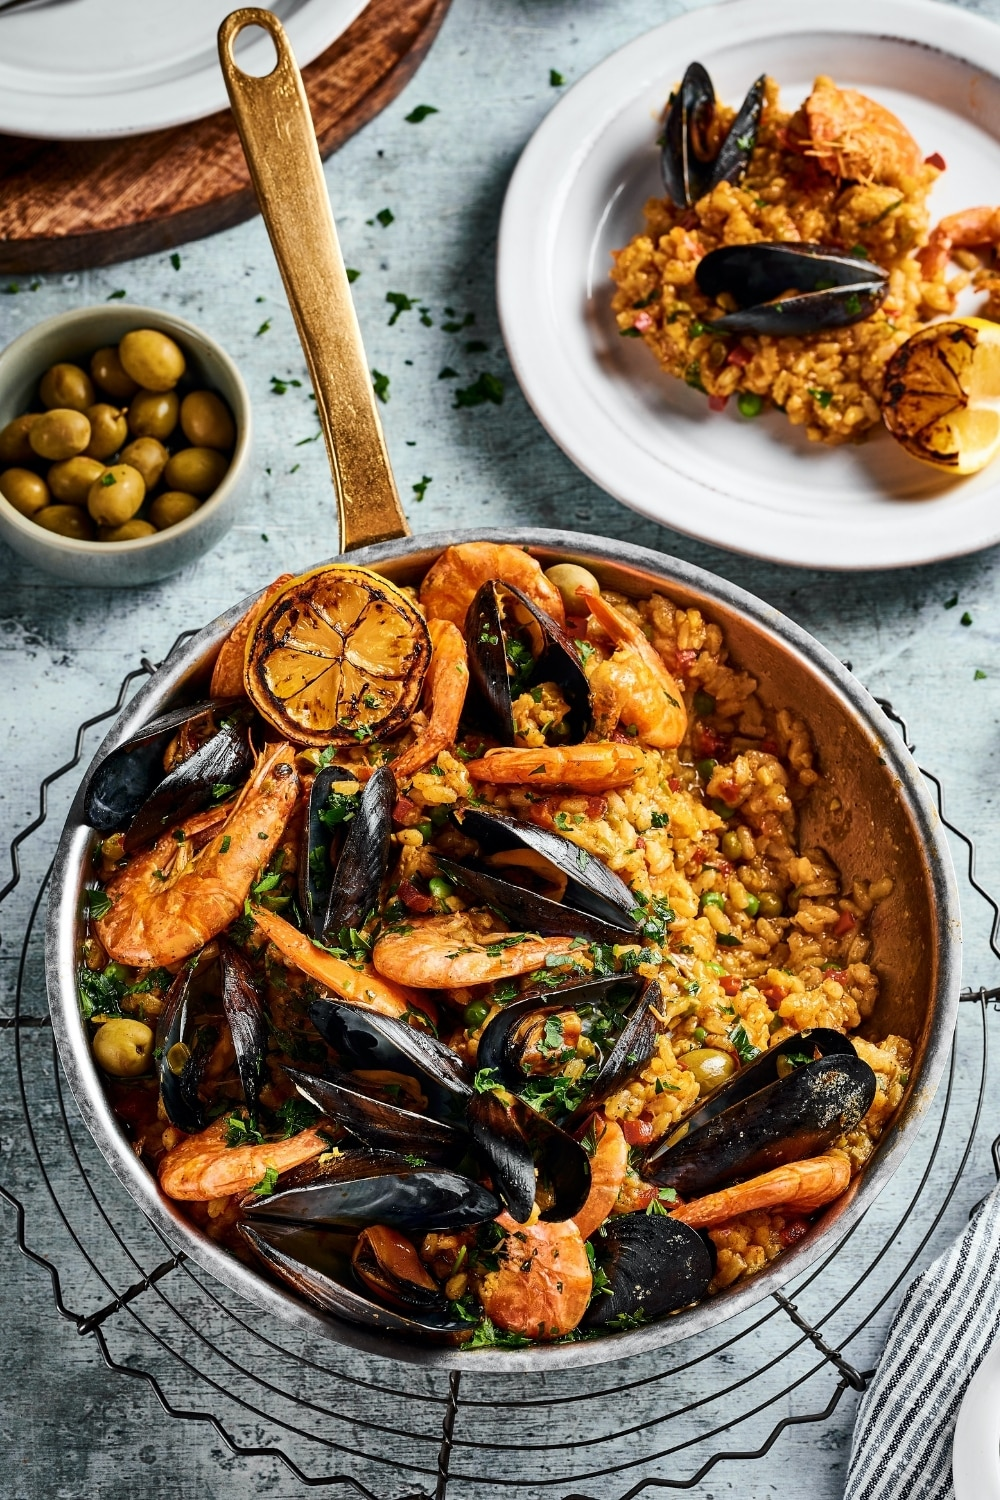 A pan on a wire rack with seafood paella in it. Behind the pan is a white plate with some of the paella on it. To the left of the white plate is a small bowl of olives.